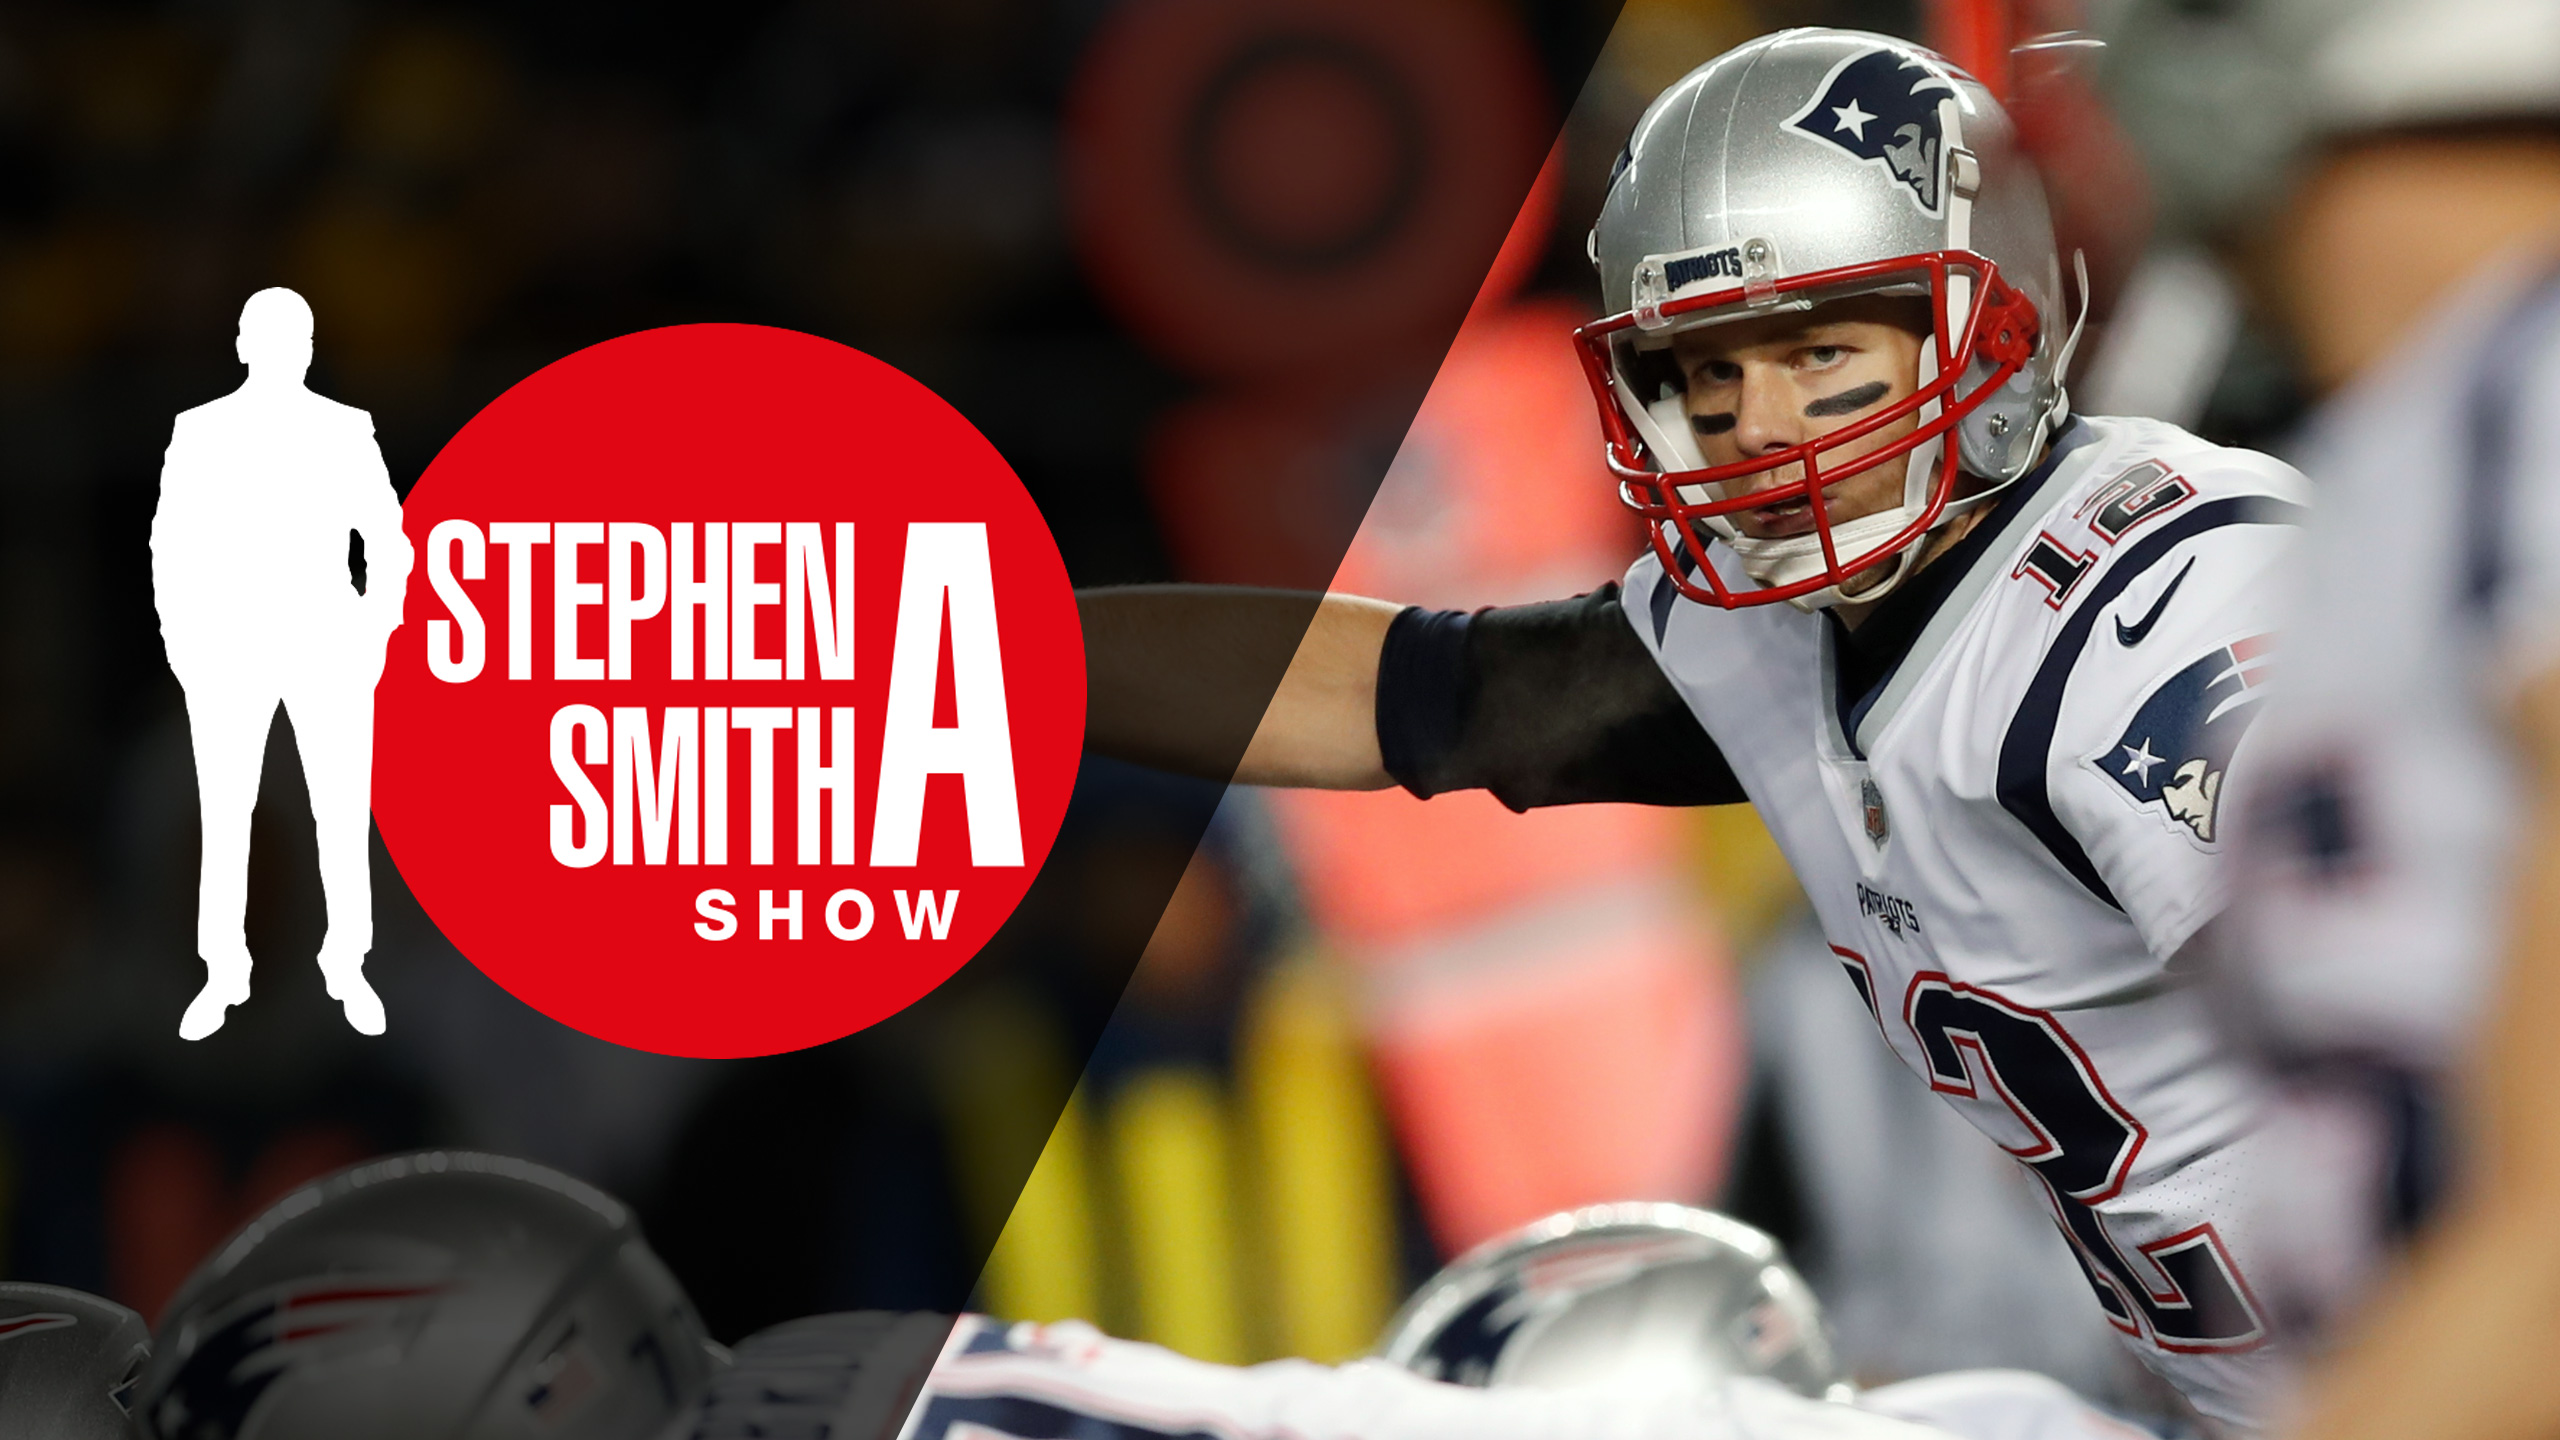 Tue, 12/18 - The Stephen A. Smith Show